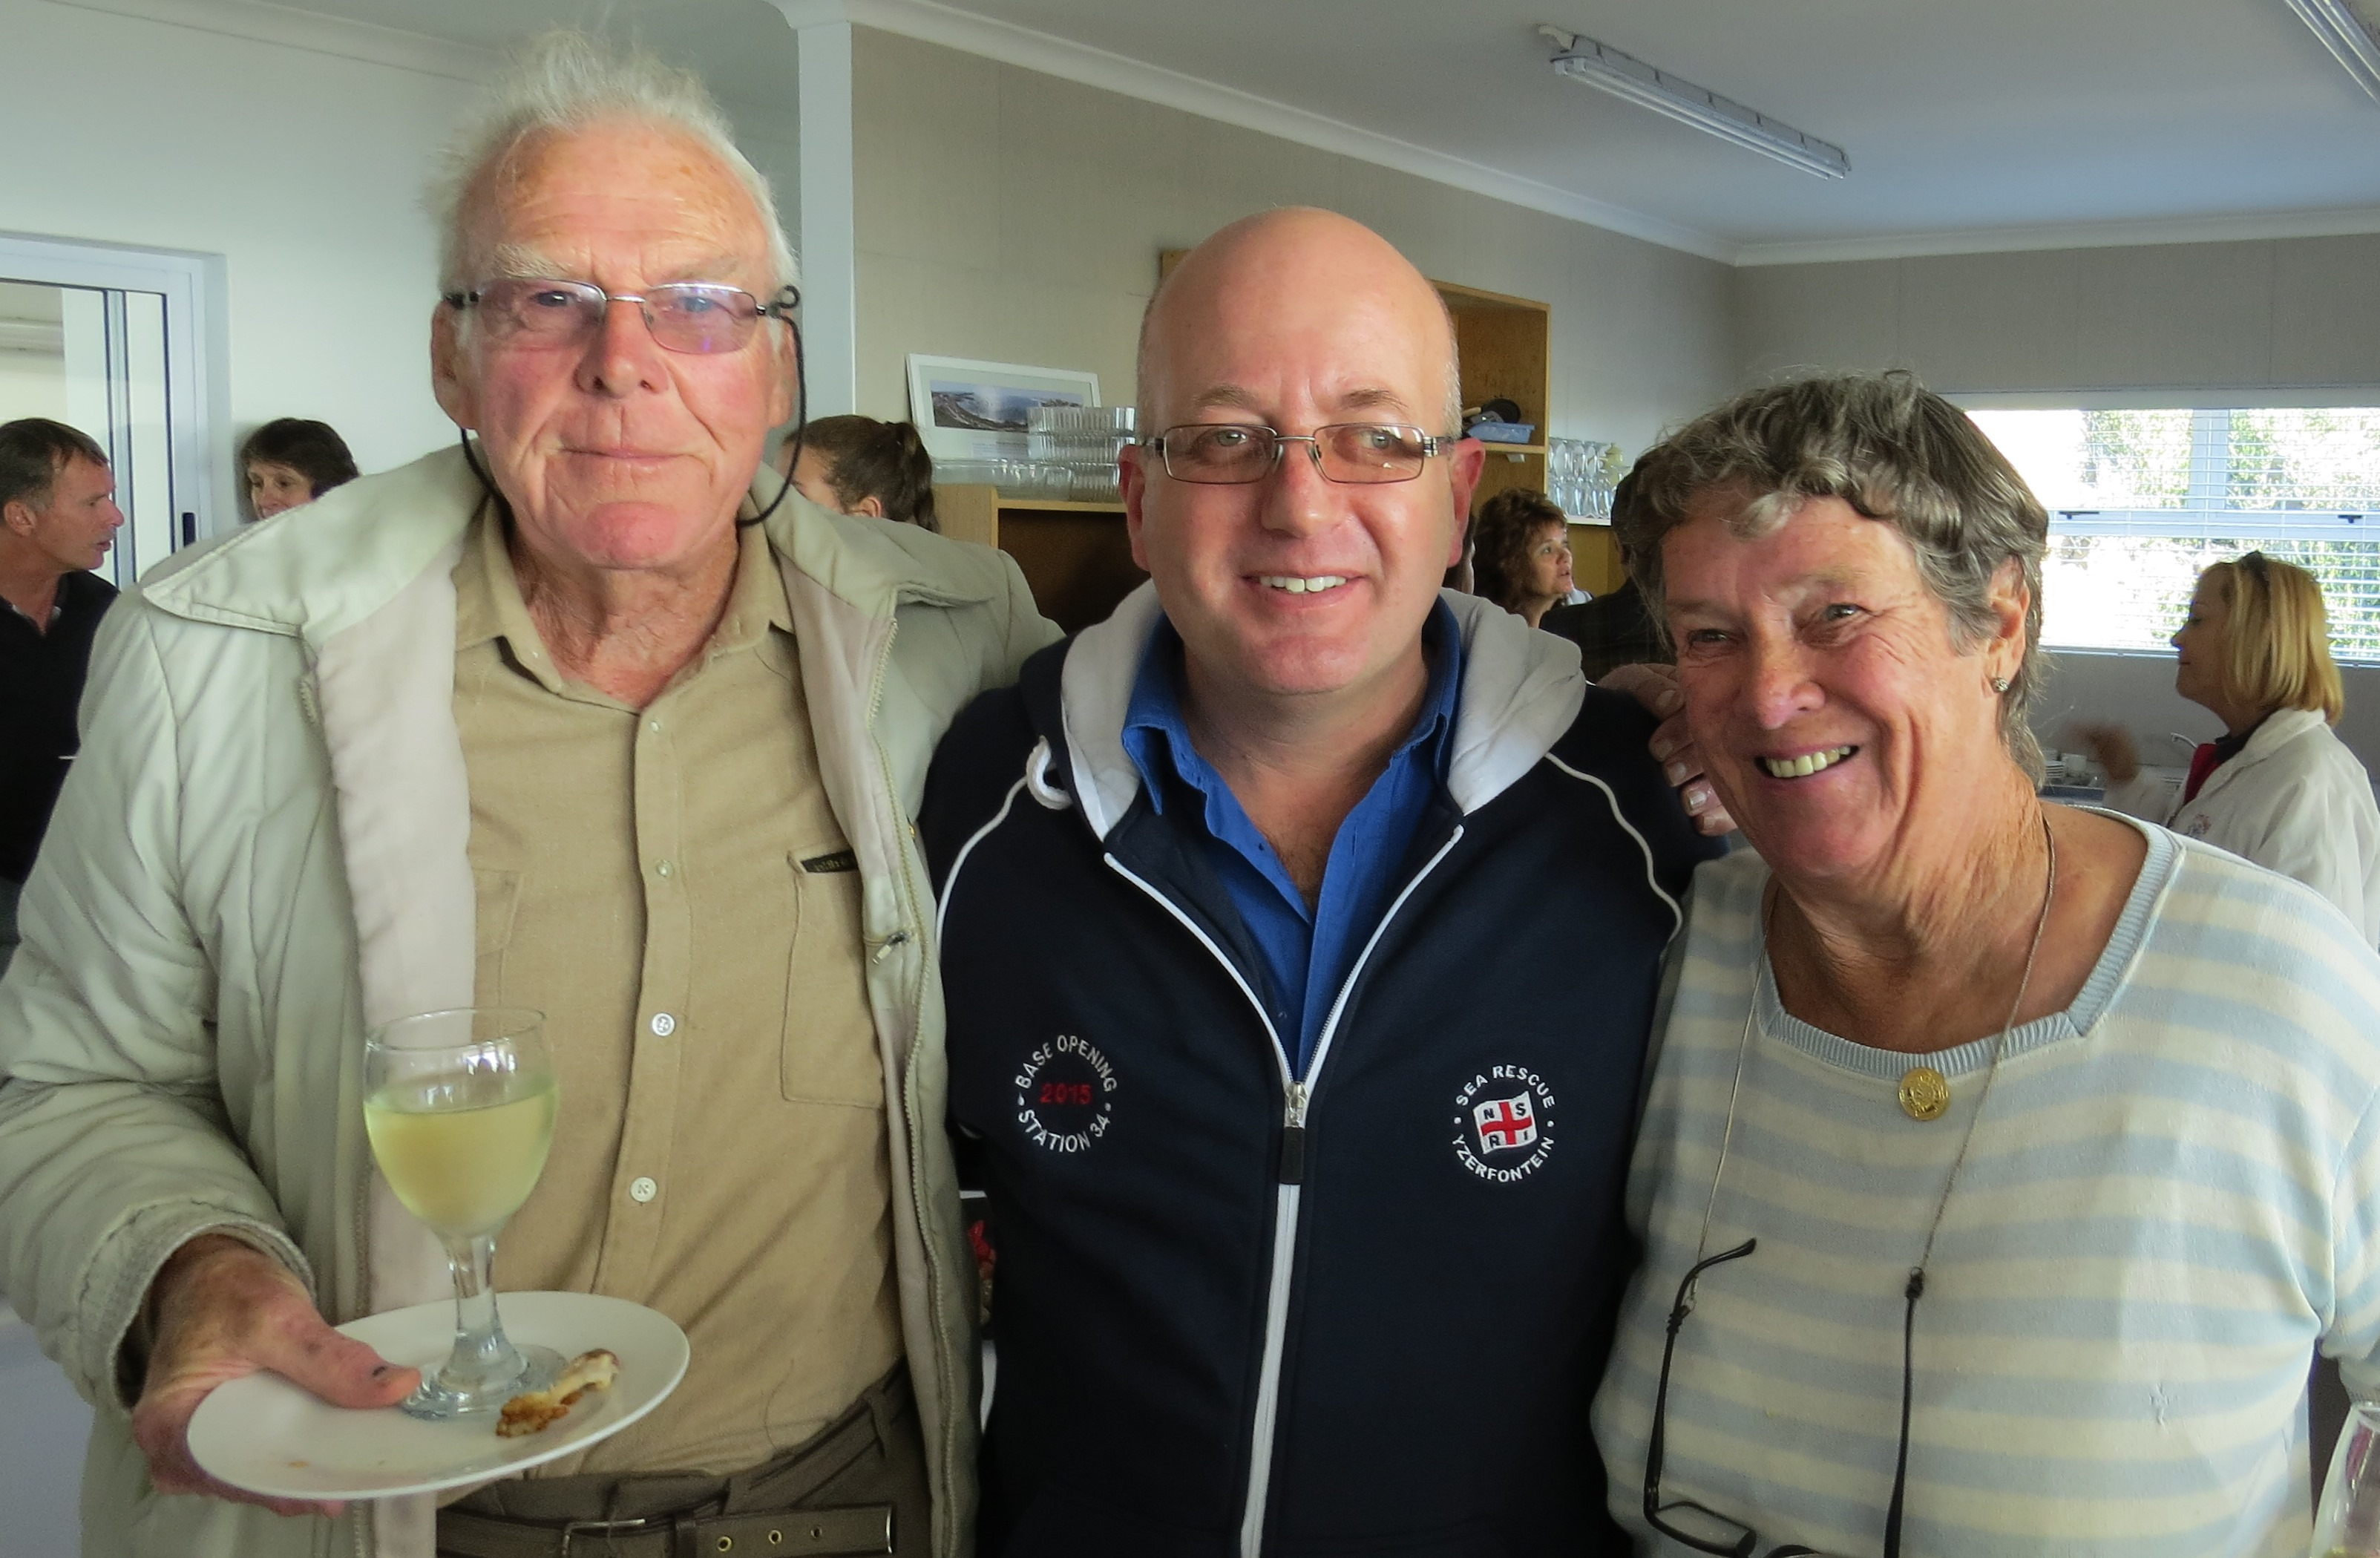 Mr and Mrs Clarkson of Yzerfontein with former Station Commander, Rudi Rogers